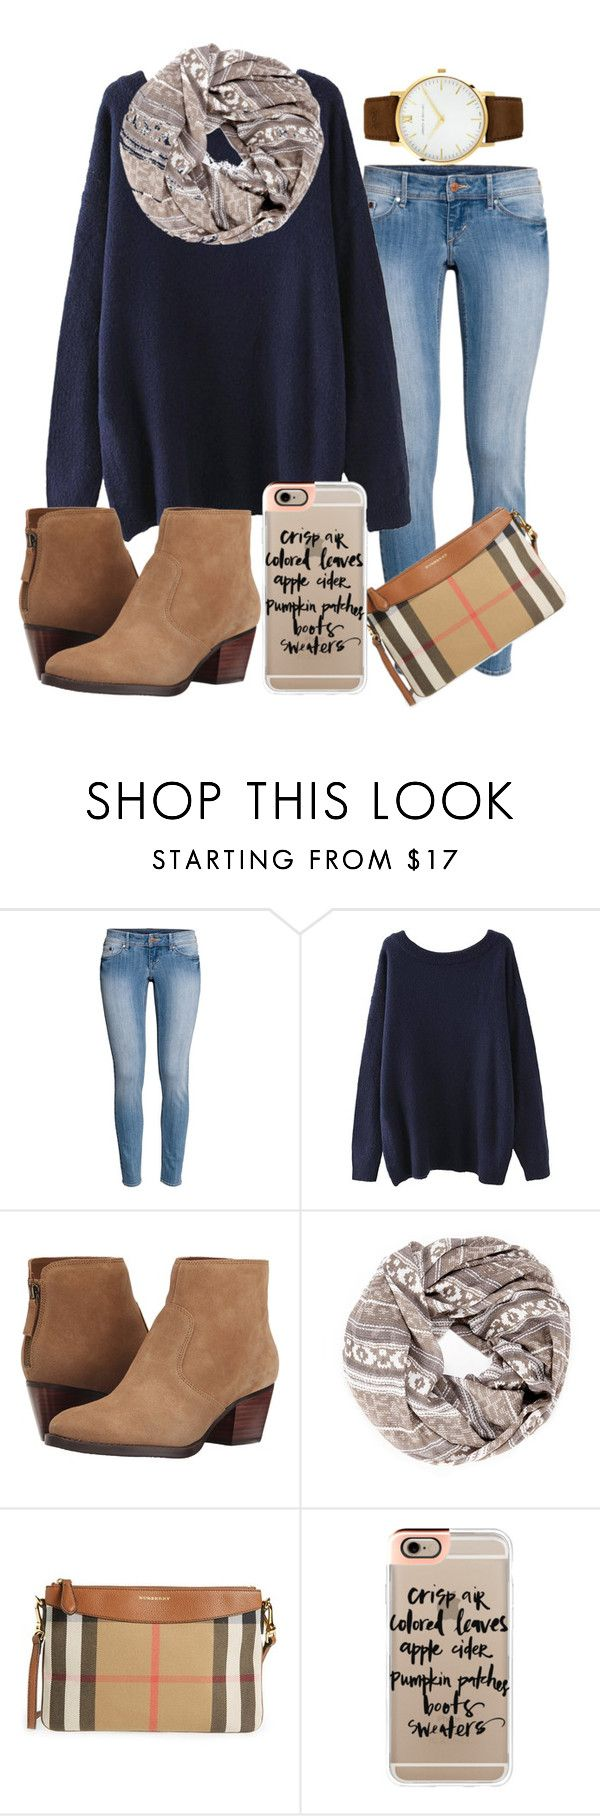 """Cause girl you're perfect, you're always worth it "" by madelyn-abigail ❤ liked on Polyvore featuring H&M, Nine West, Sole Society, Burberry, Casetify and Larsson & Jennings"